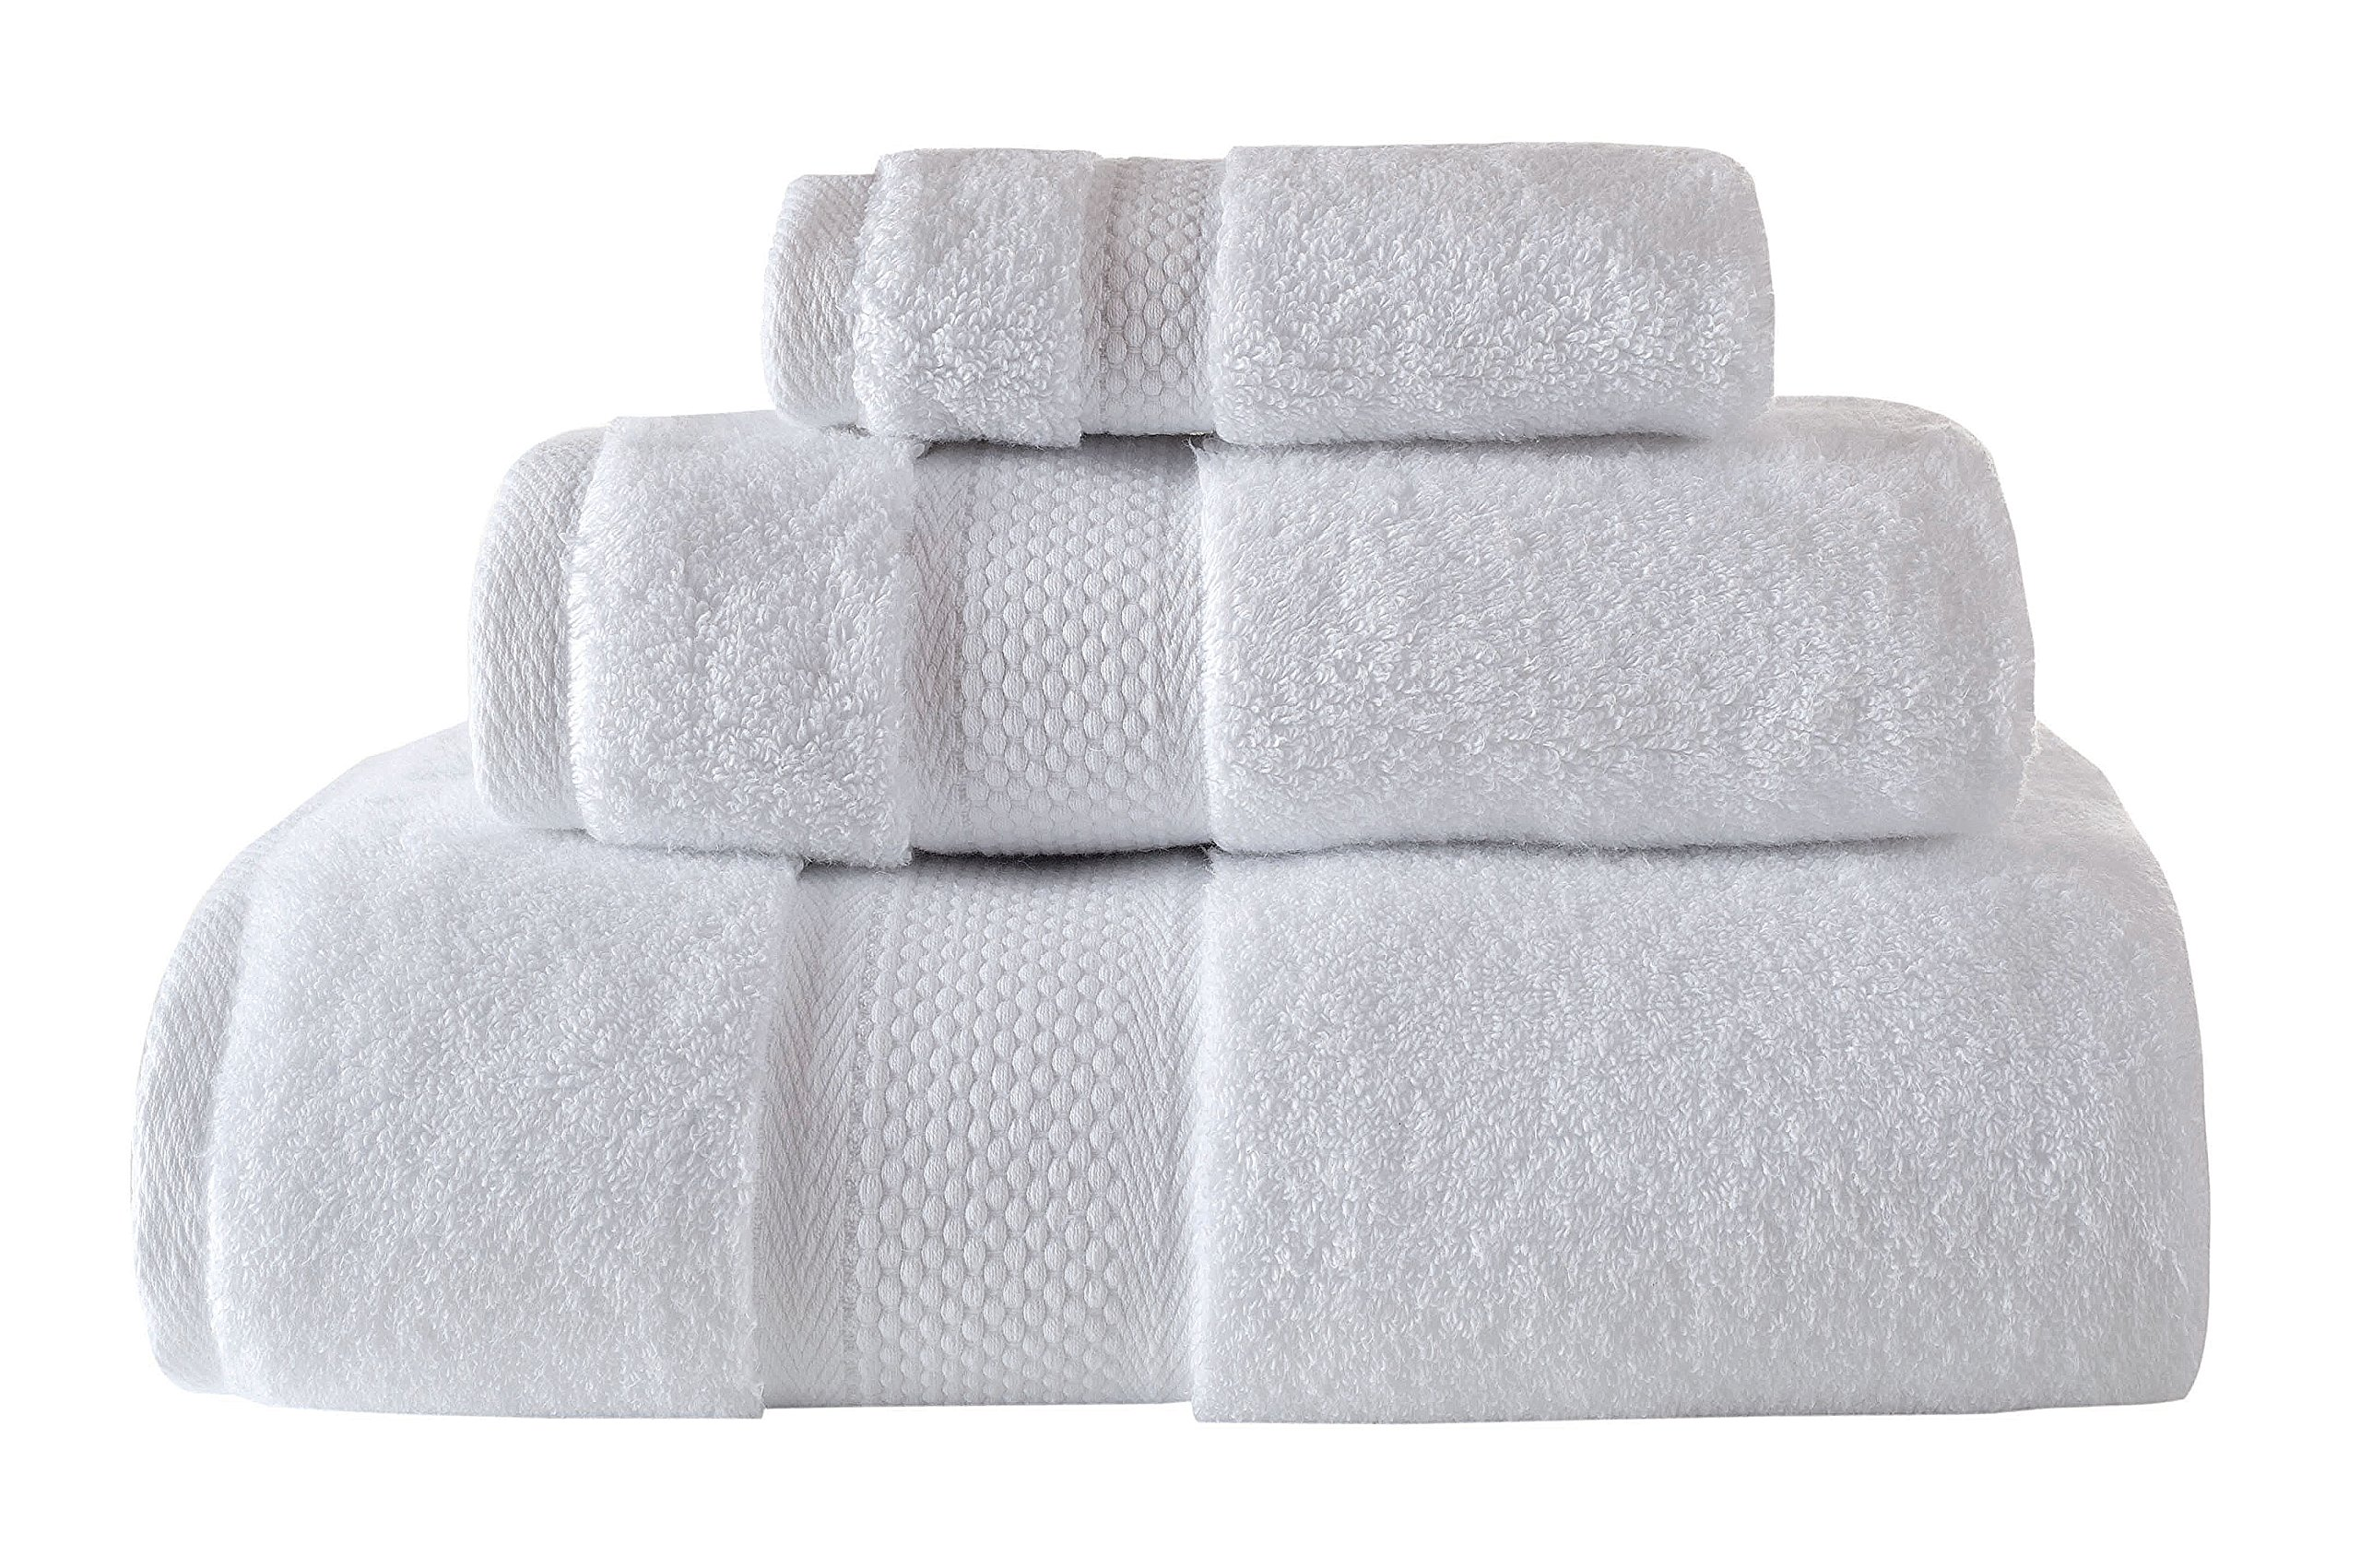 Bagno Milano Luxury Hotel & Spa Collection 700 GSM Towel Set, Aqua Fibro Finest Turkish Cotton, Set of 3 Towel Bundle, White